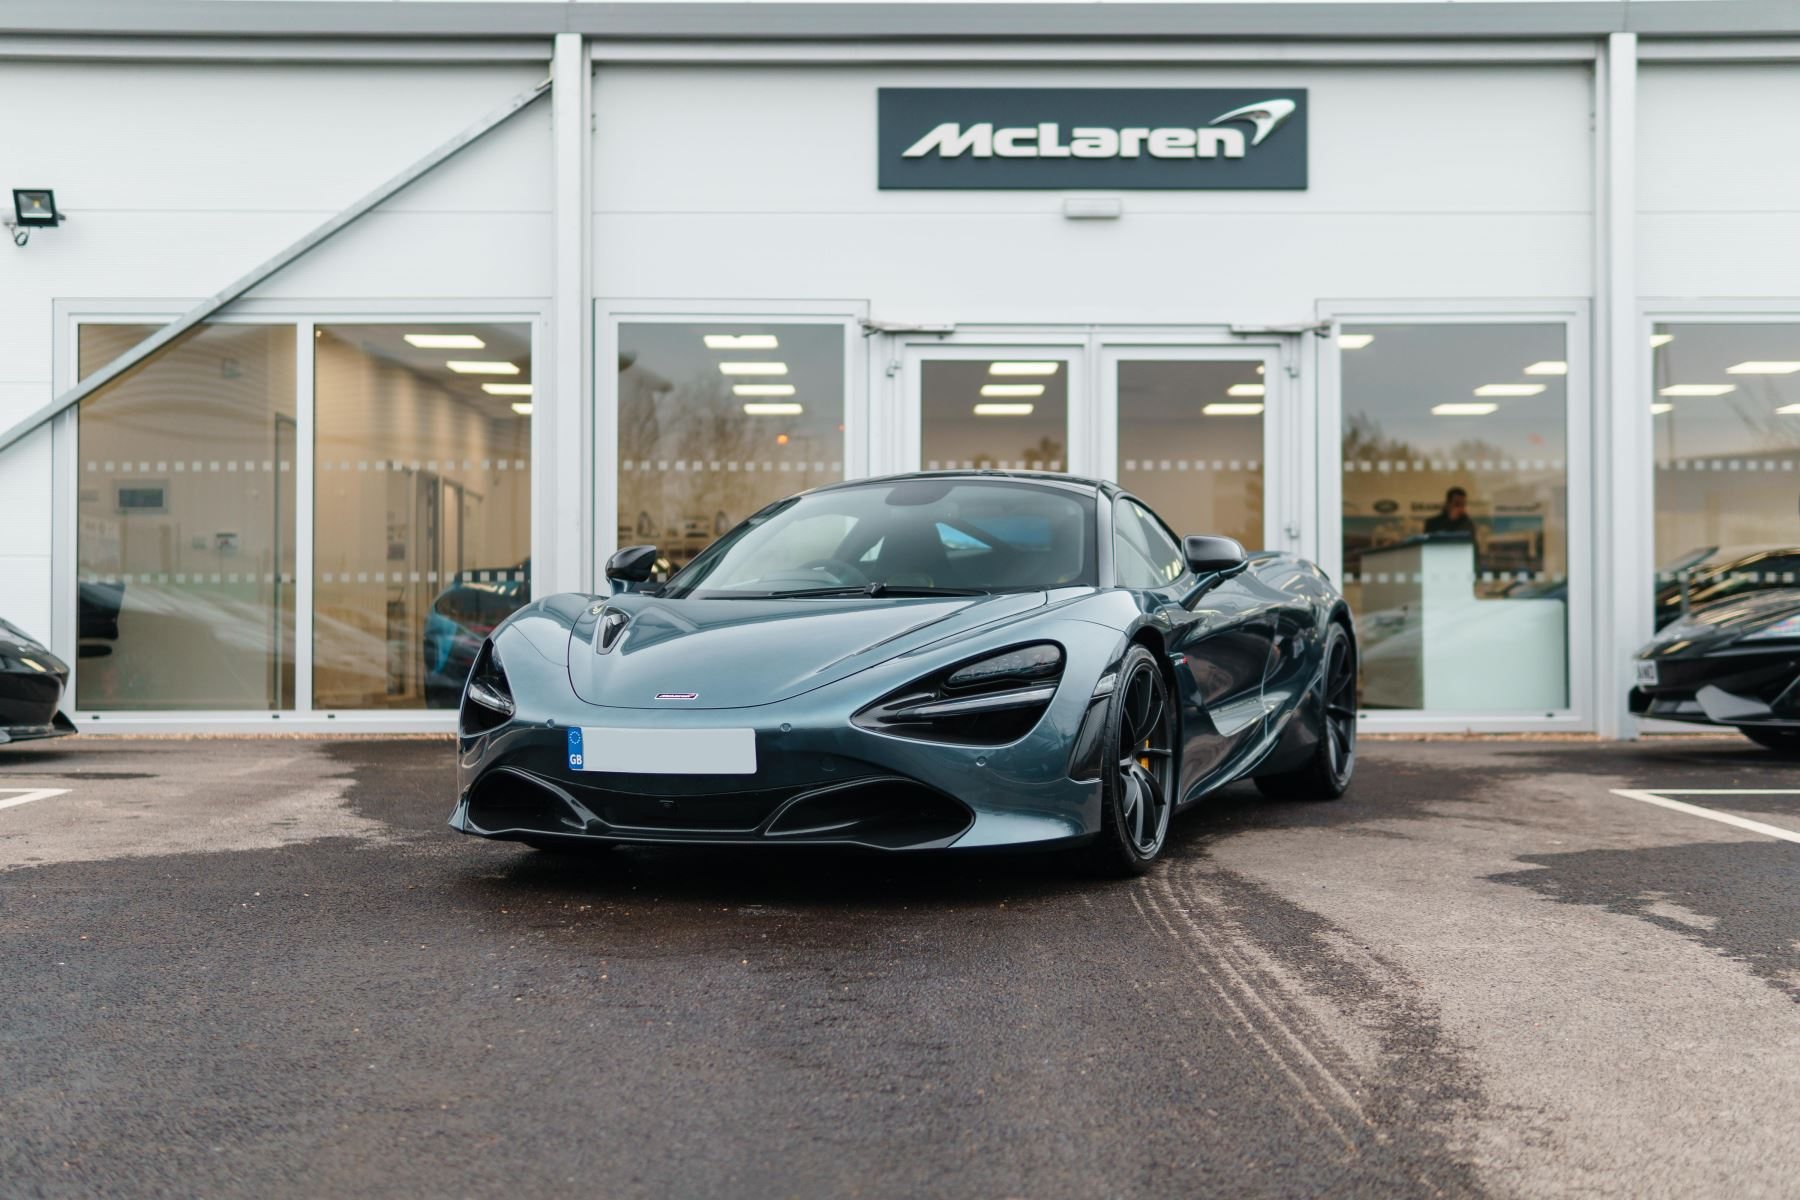 McLaren 720S Performance 4.0 Automatic 2 door Coupe (2018) image